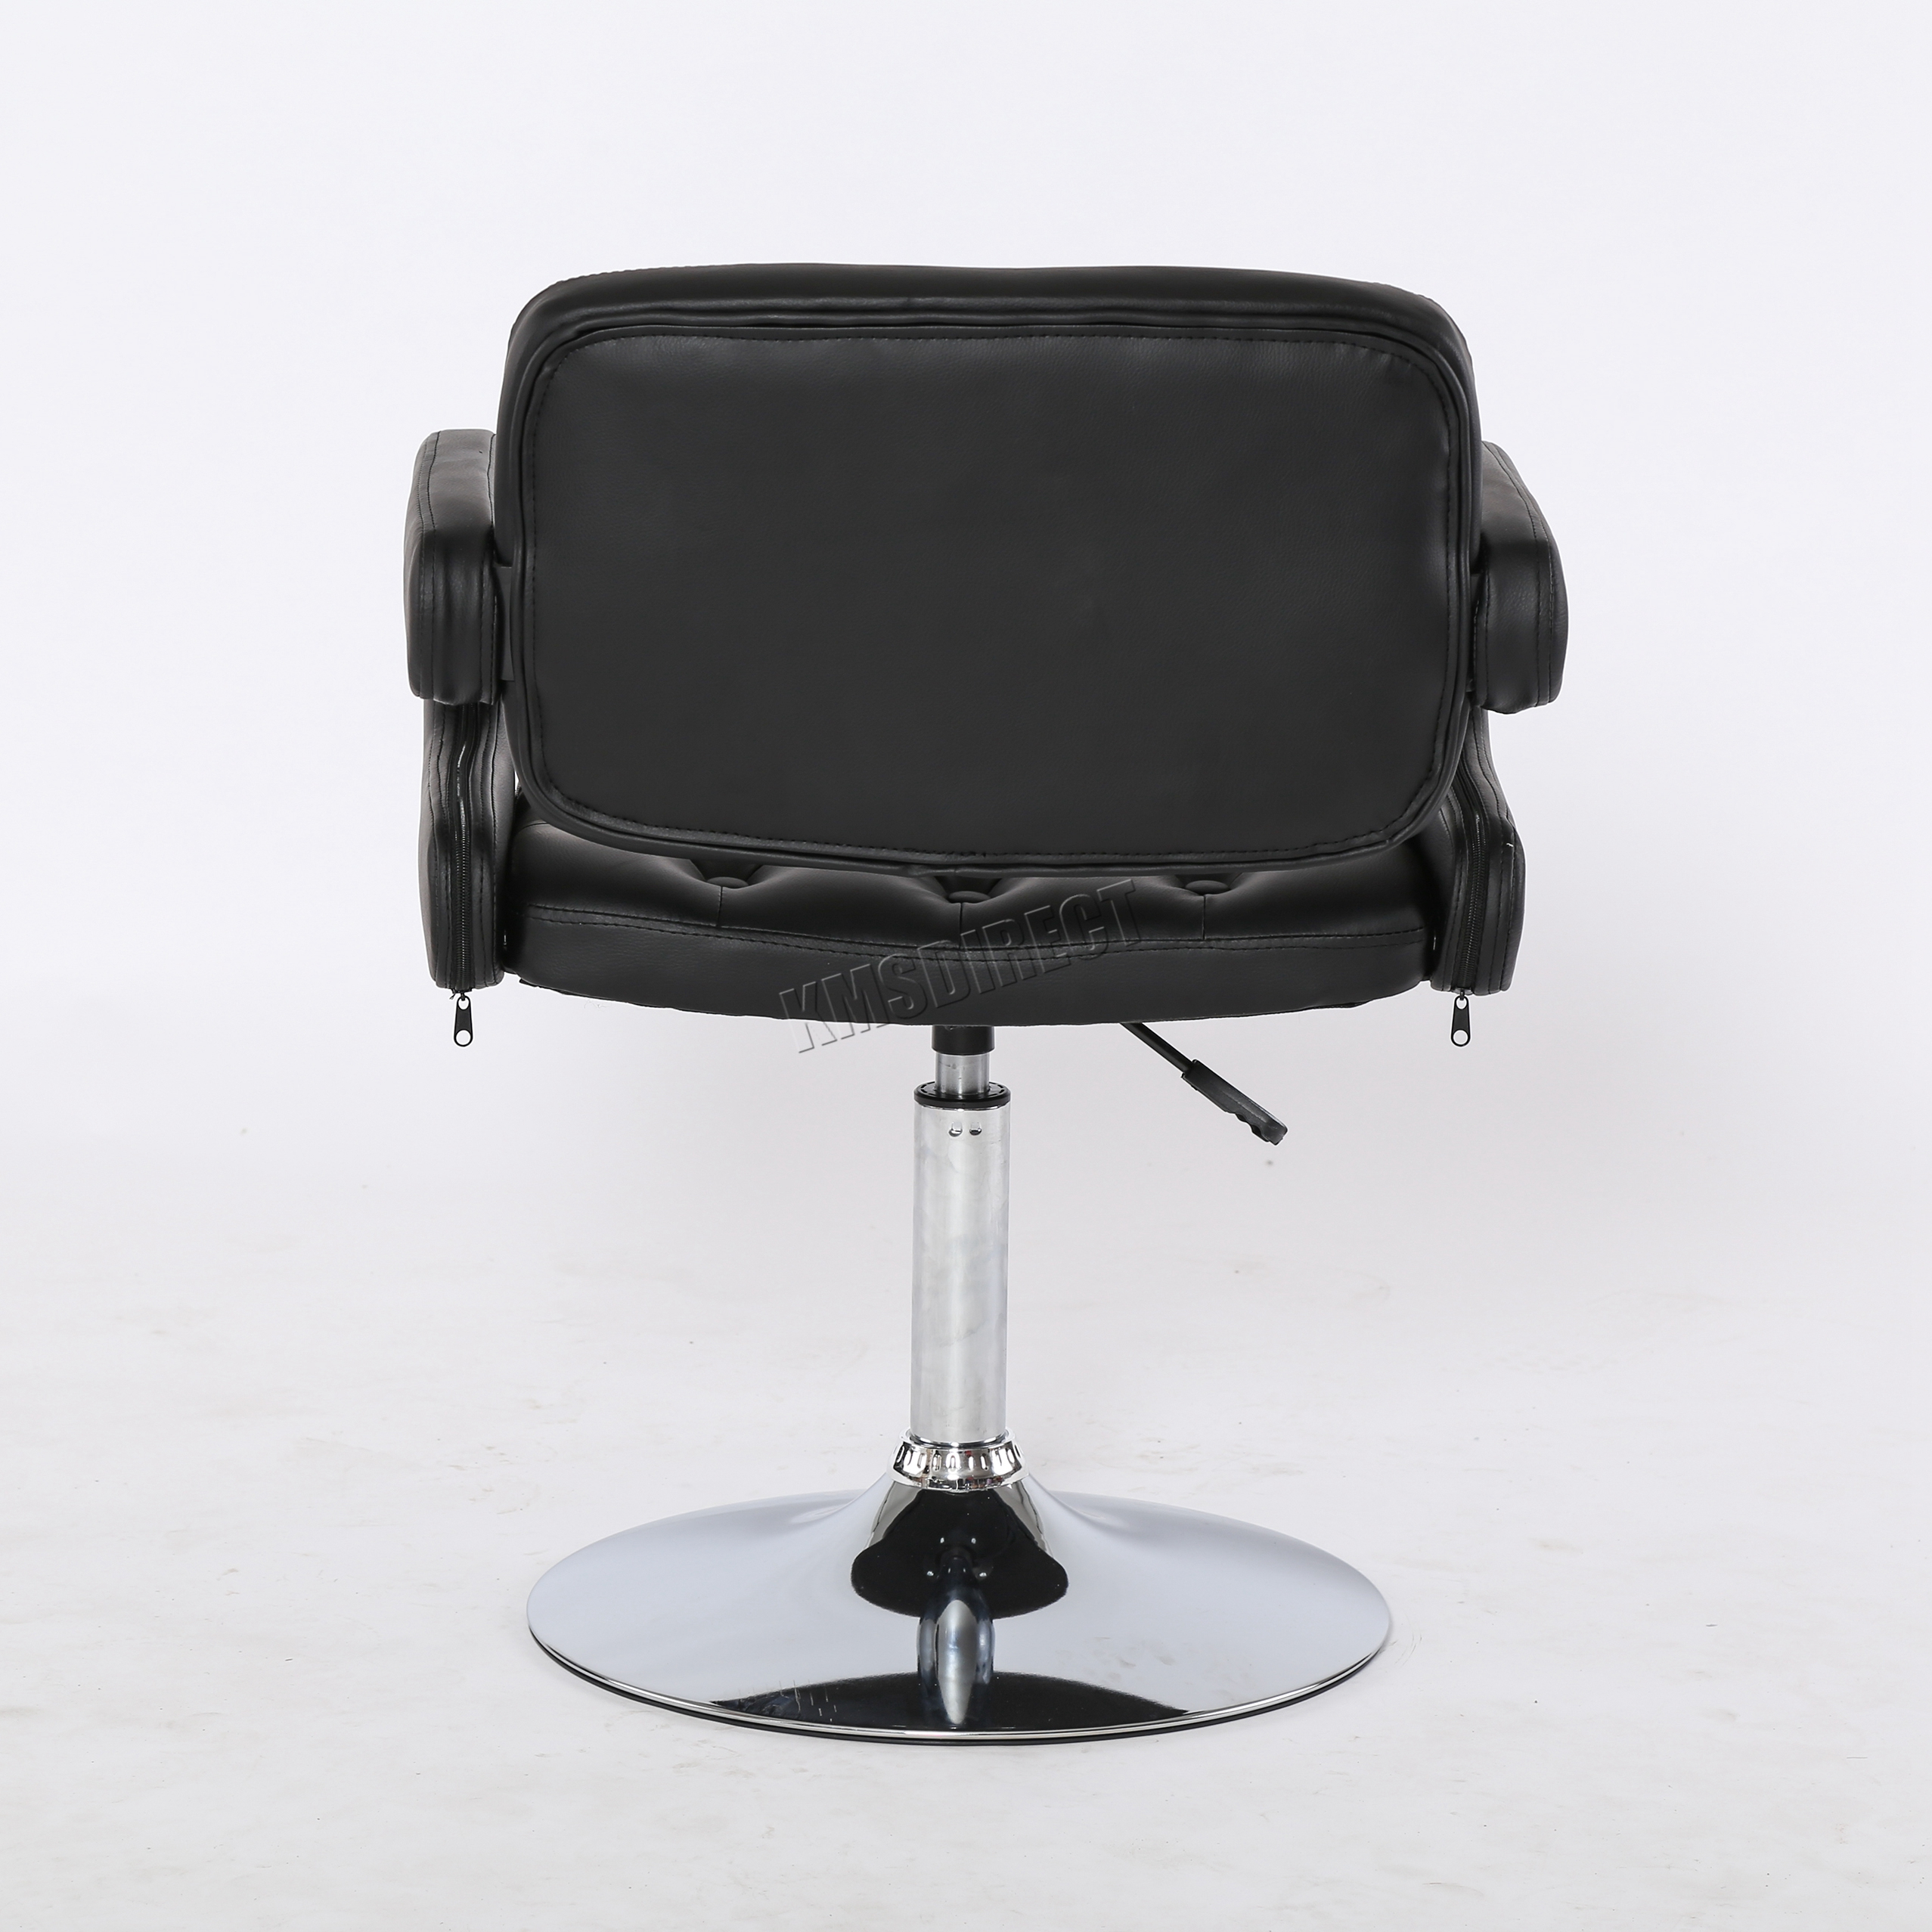 beauty salon chairs images ergonomic chair reviews 2018 foxhunter barber hairdressing hair cut